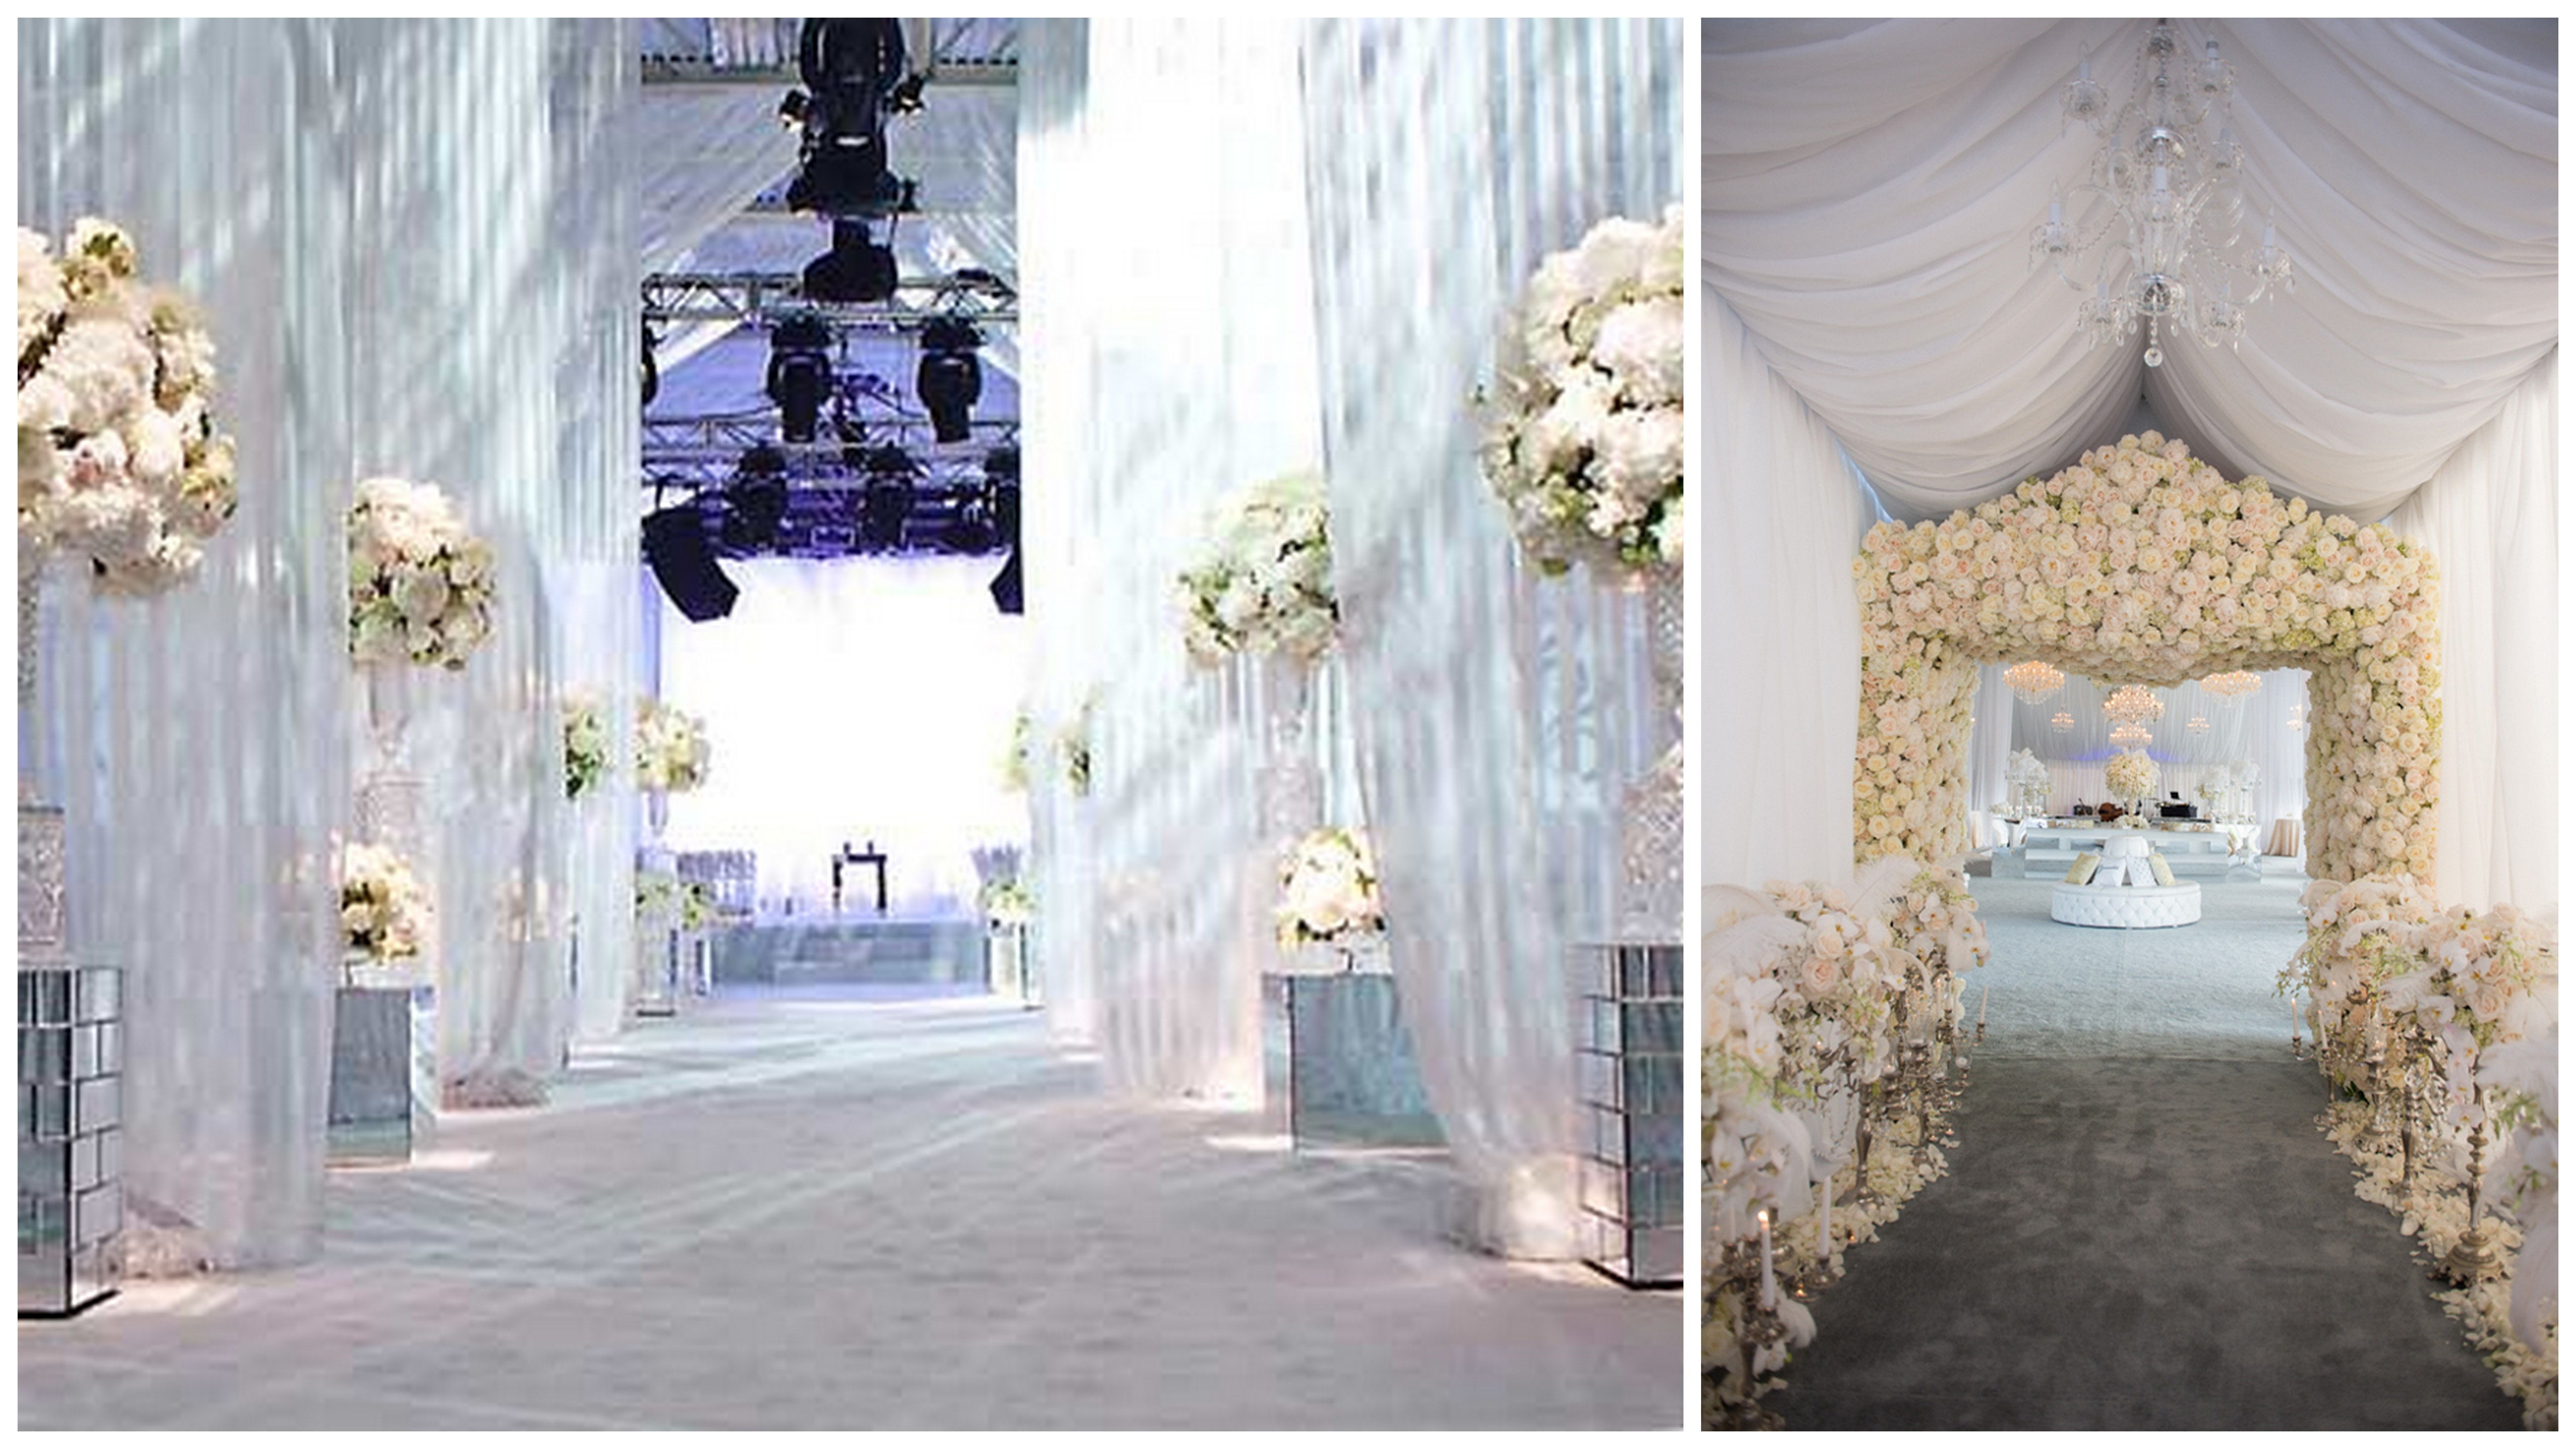 Foyer Decor For Wedding : Keith watson events special event design entertainment